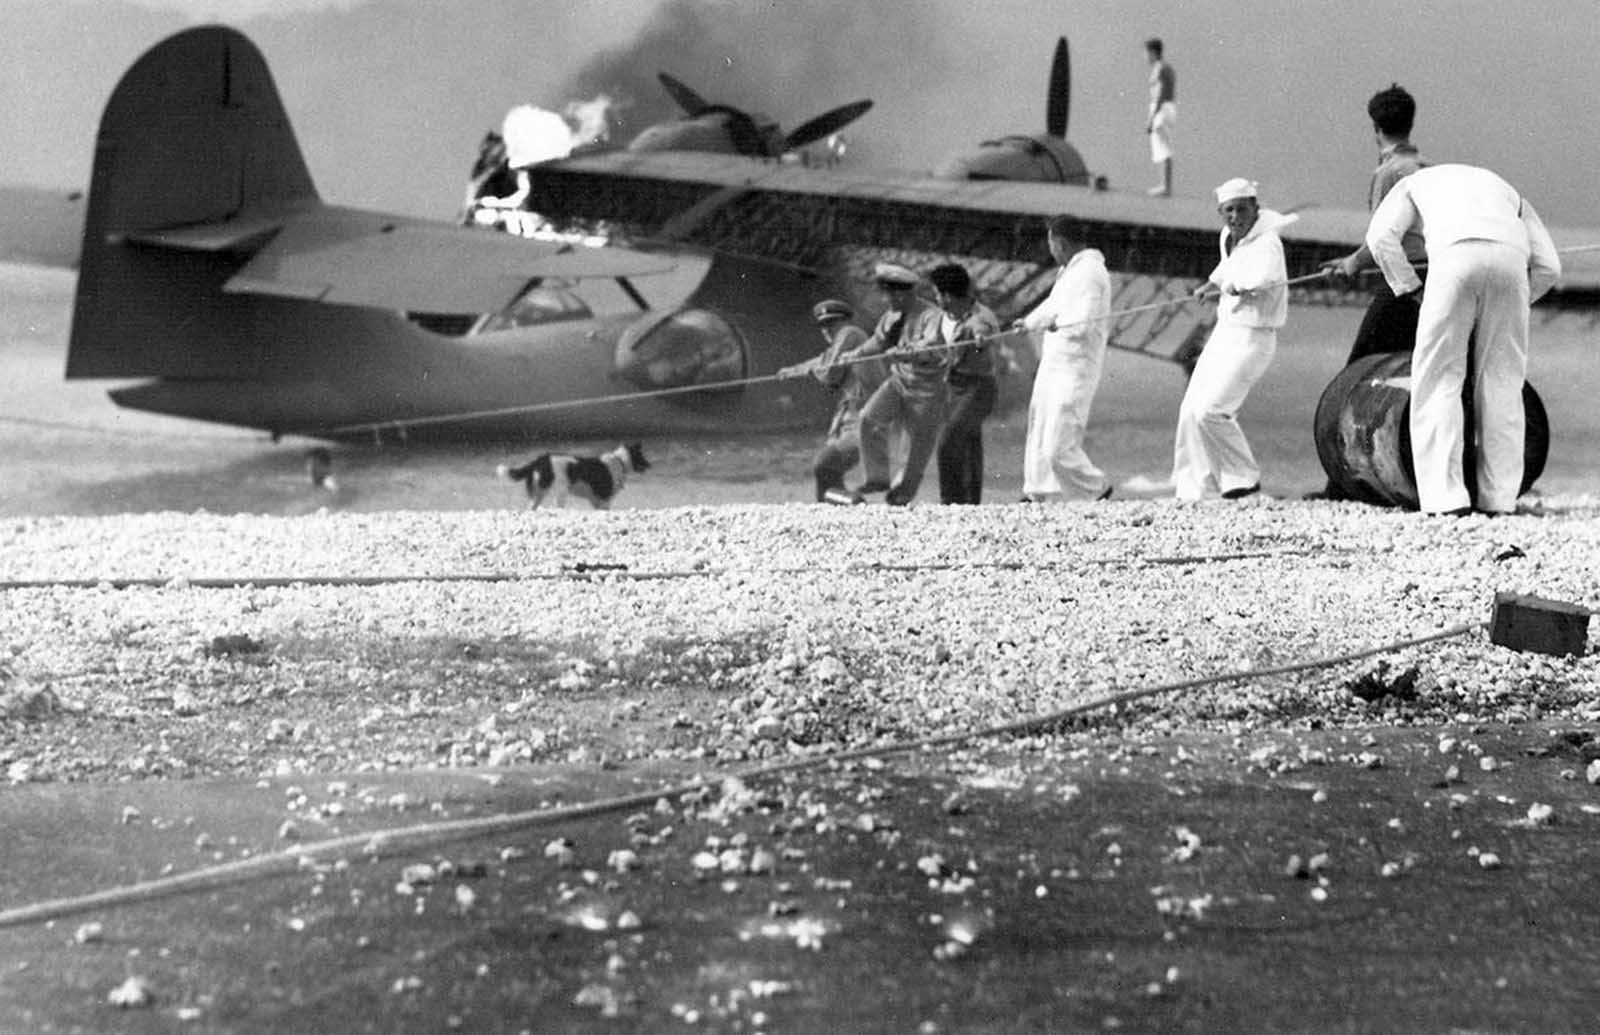 Sailors at Naval Air Station (NAS) Kaneohe attempt to salvage a burning PBY Catalina in the aftermath of the Japanese attack on Pearl Harbor.